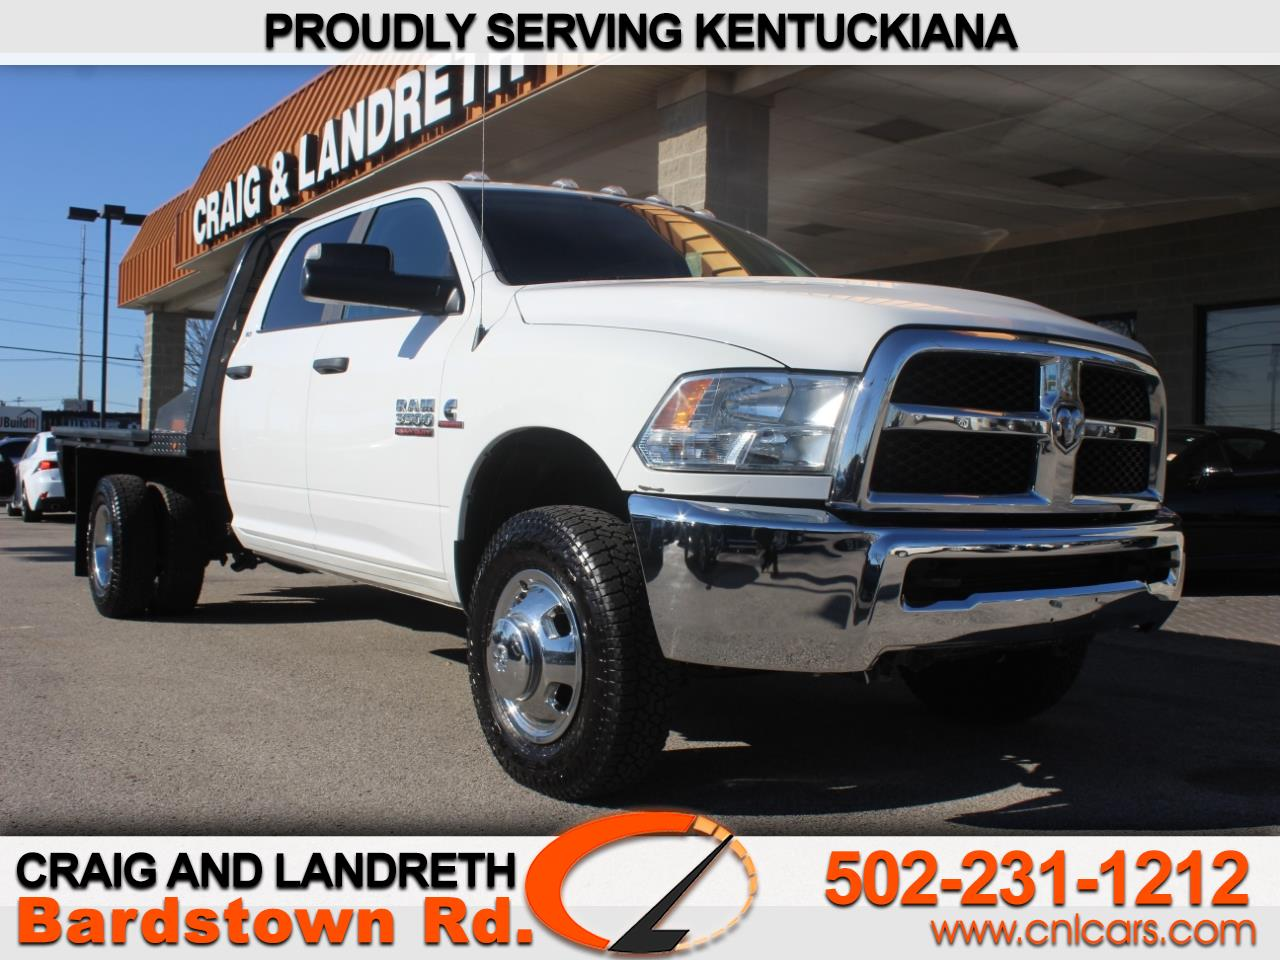 2017 RAM 3500 Chassis Cab SLT 4WD Crew Cab 172